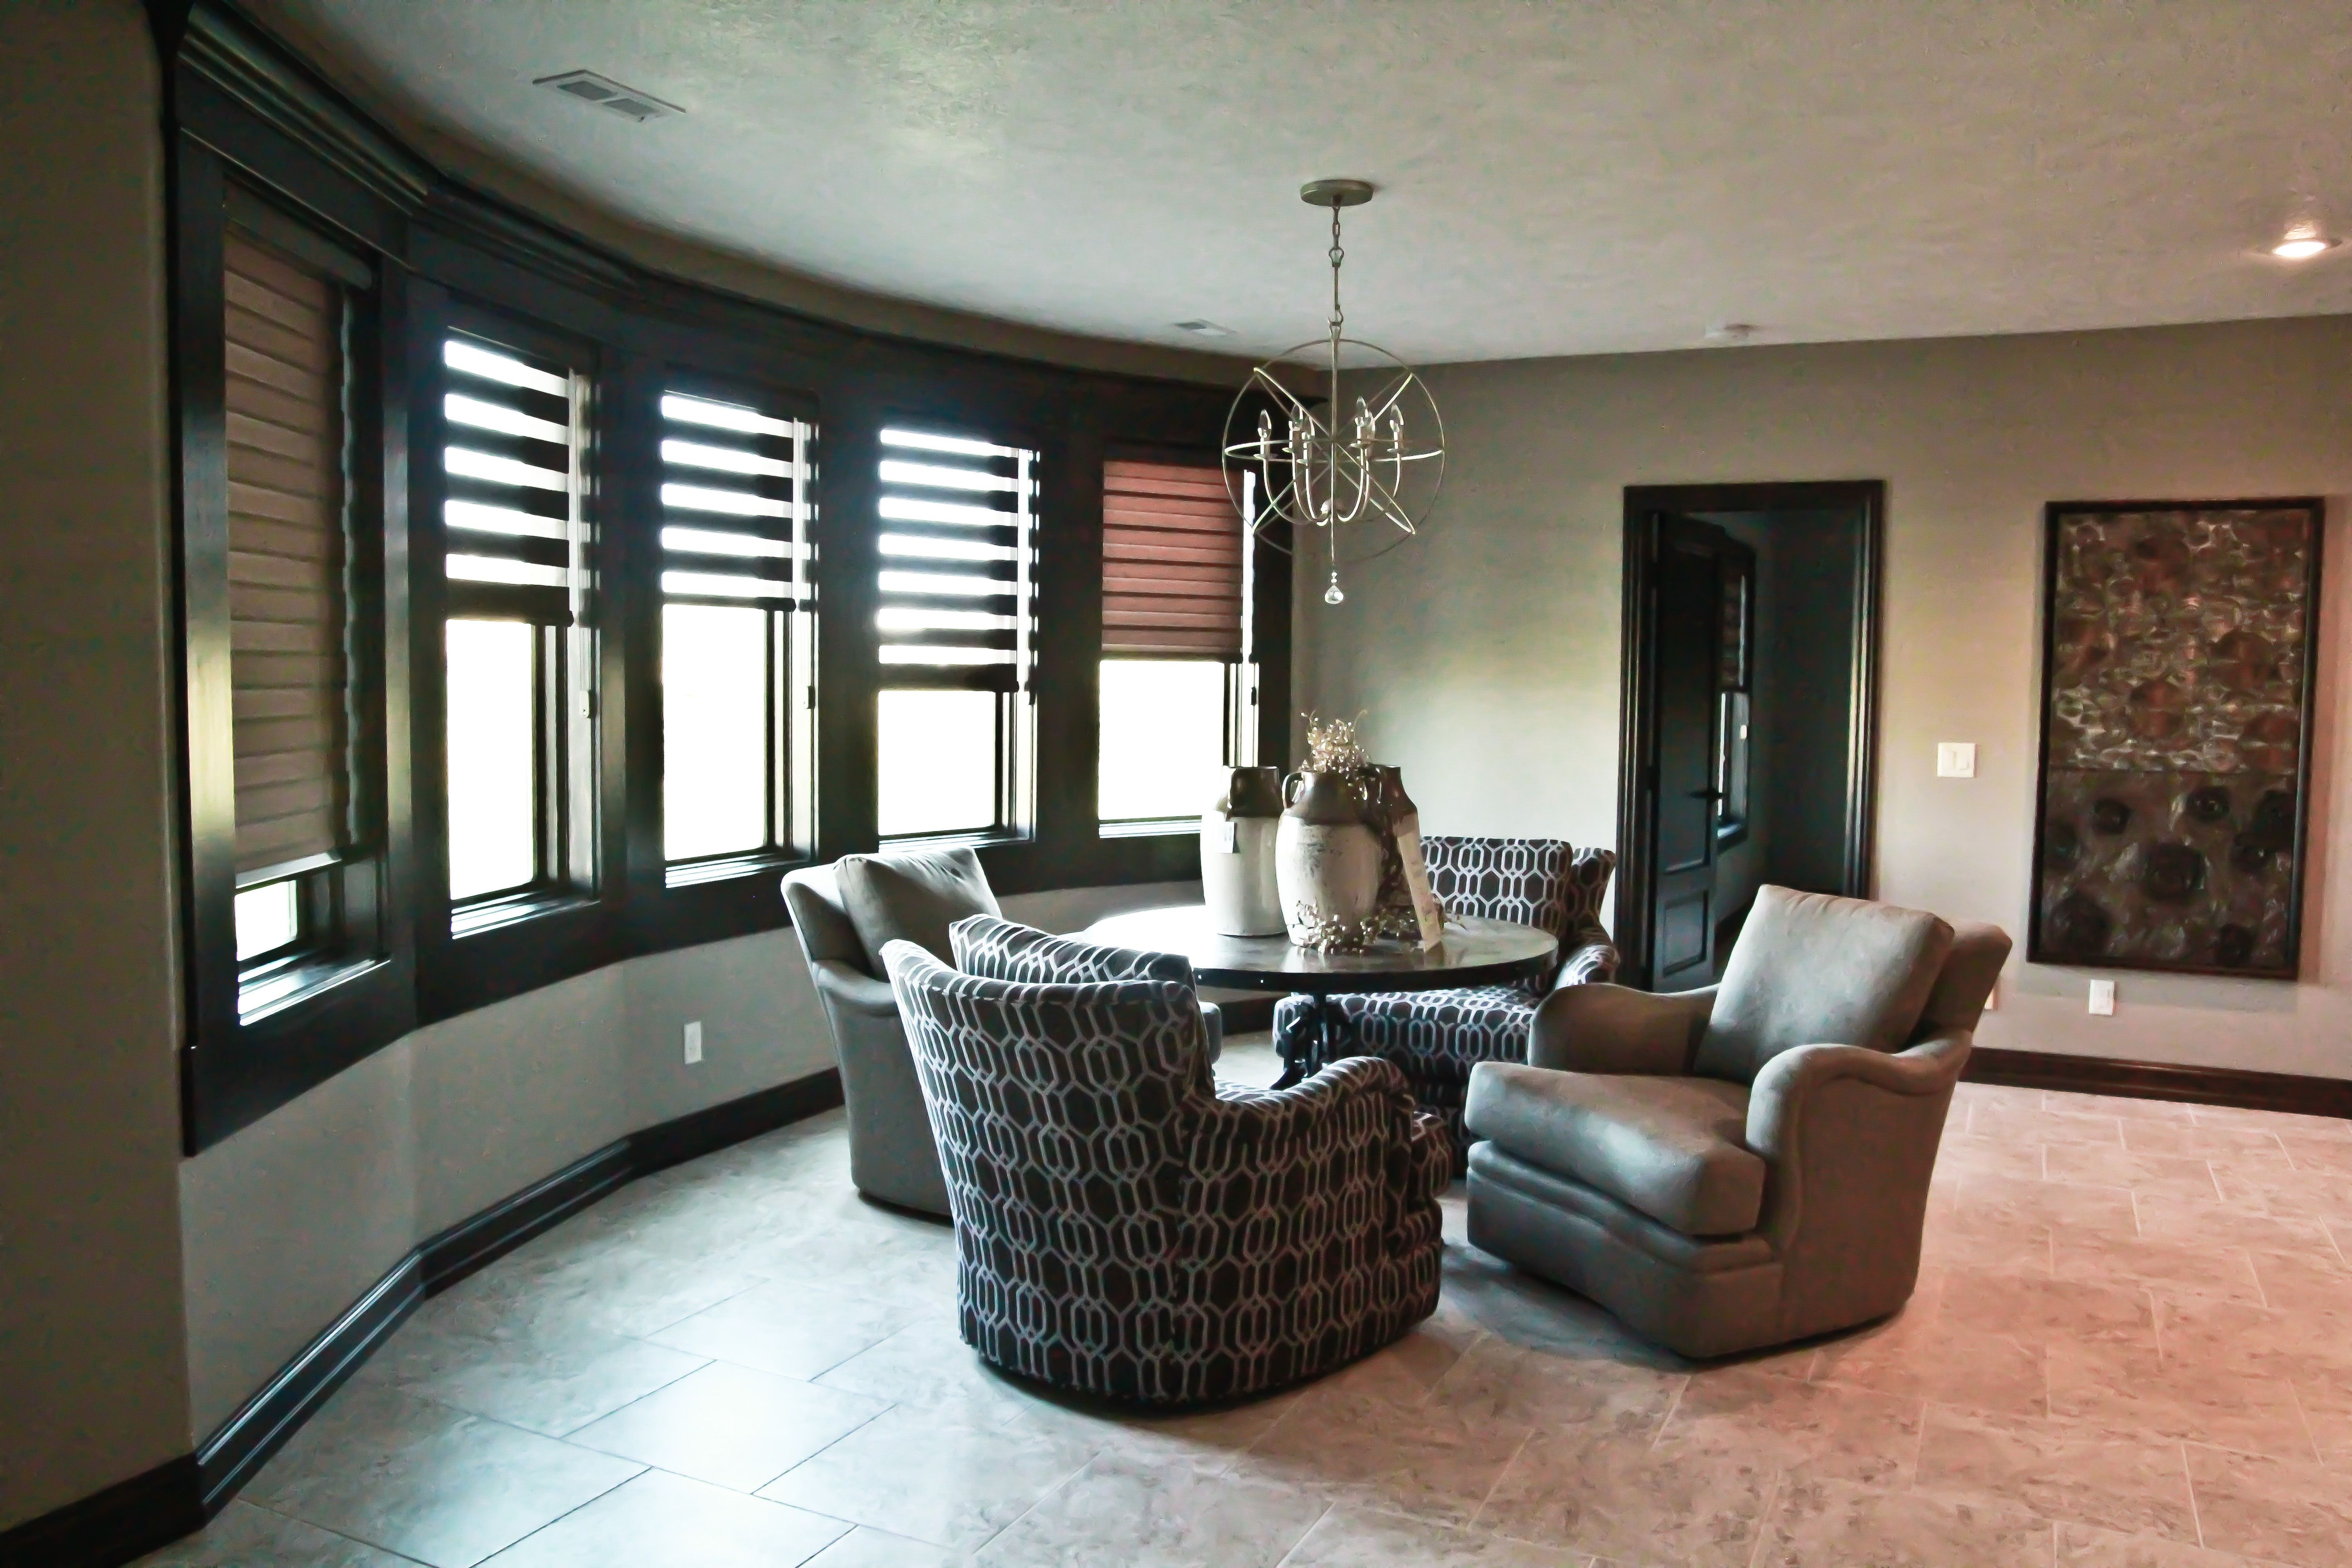 Curved Wall Windows In Curved Wall Wood Windows Wood Blinds In